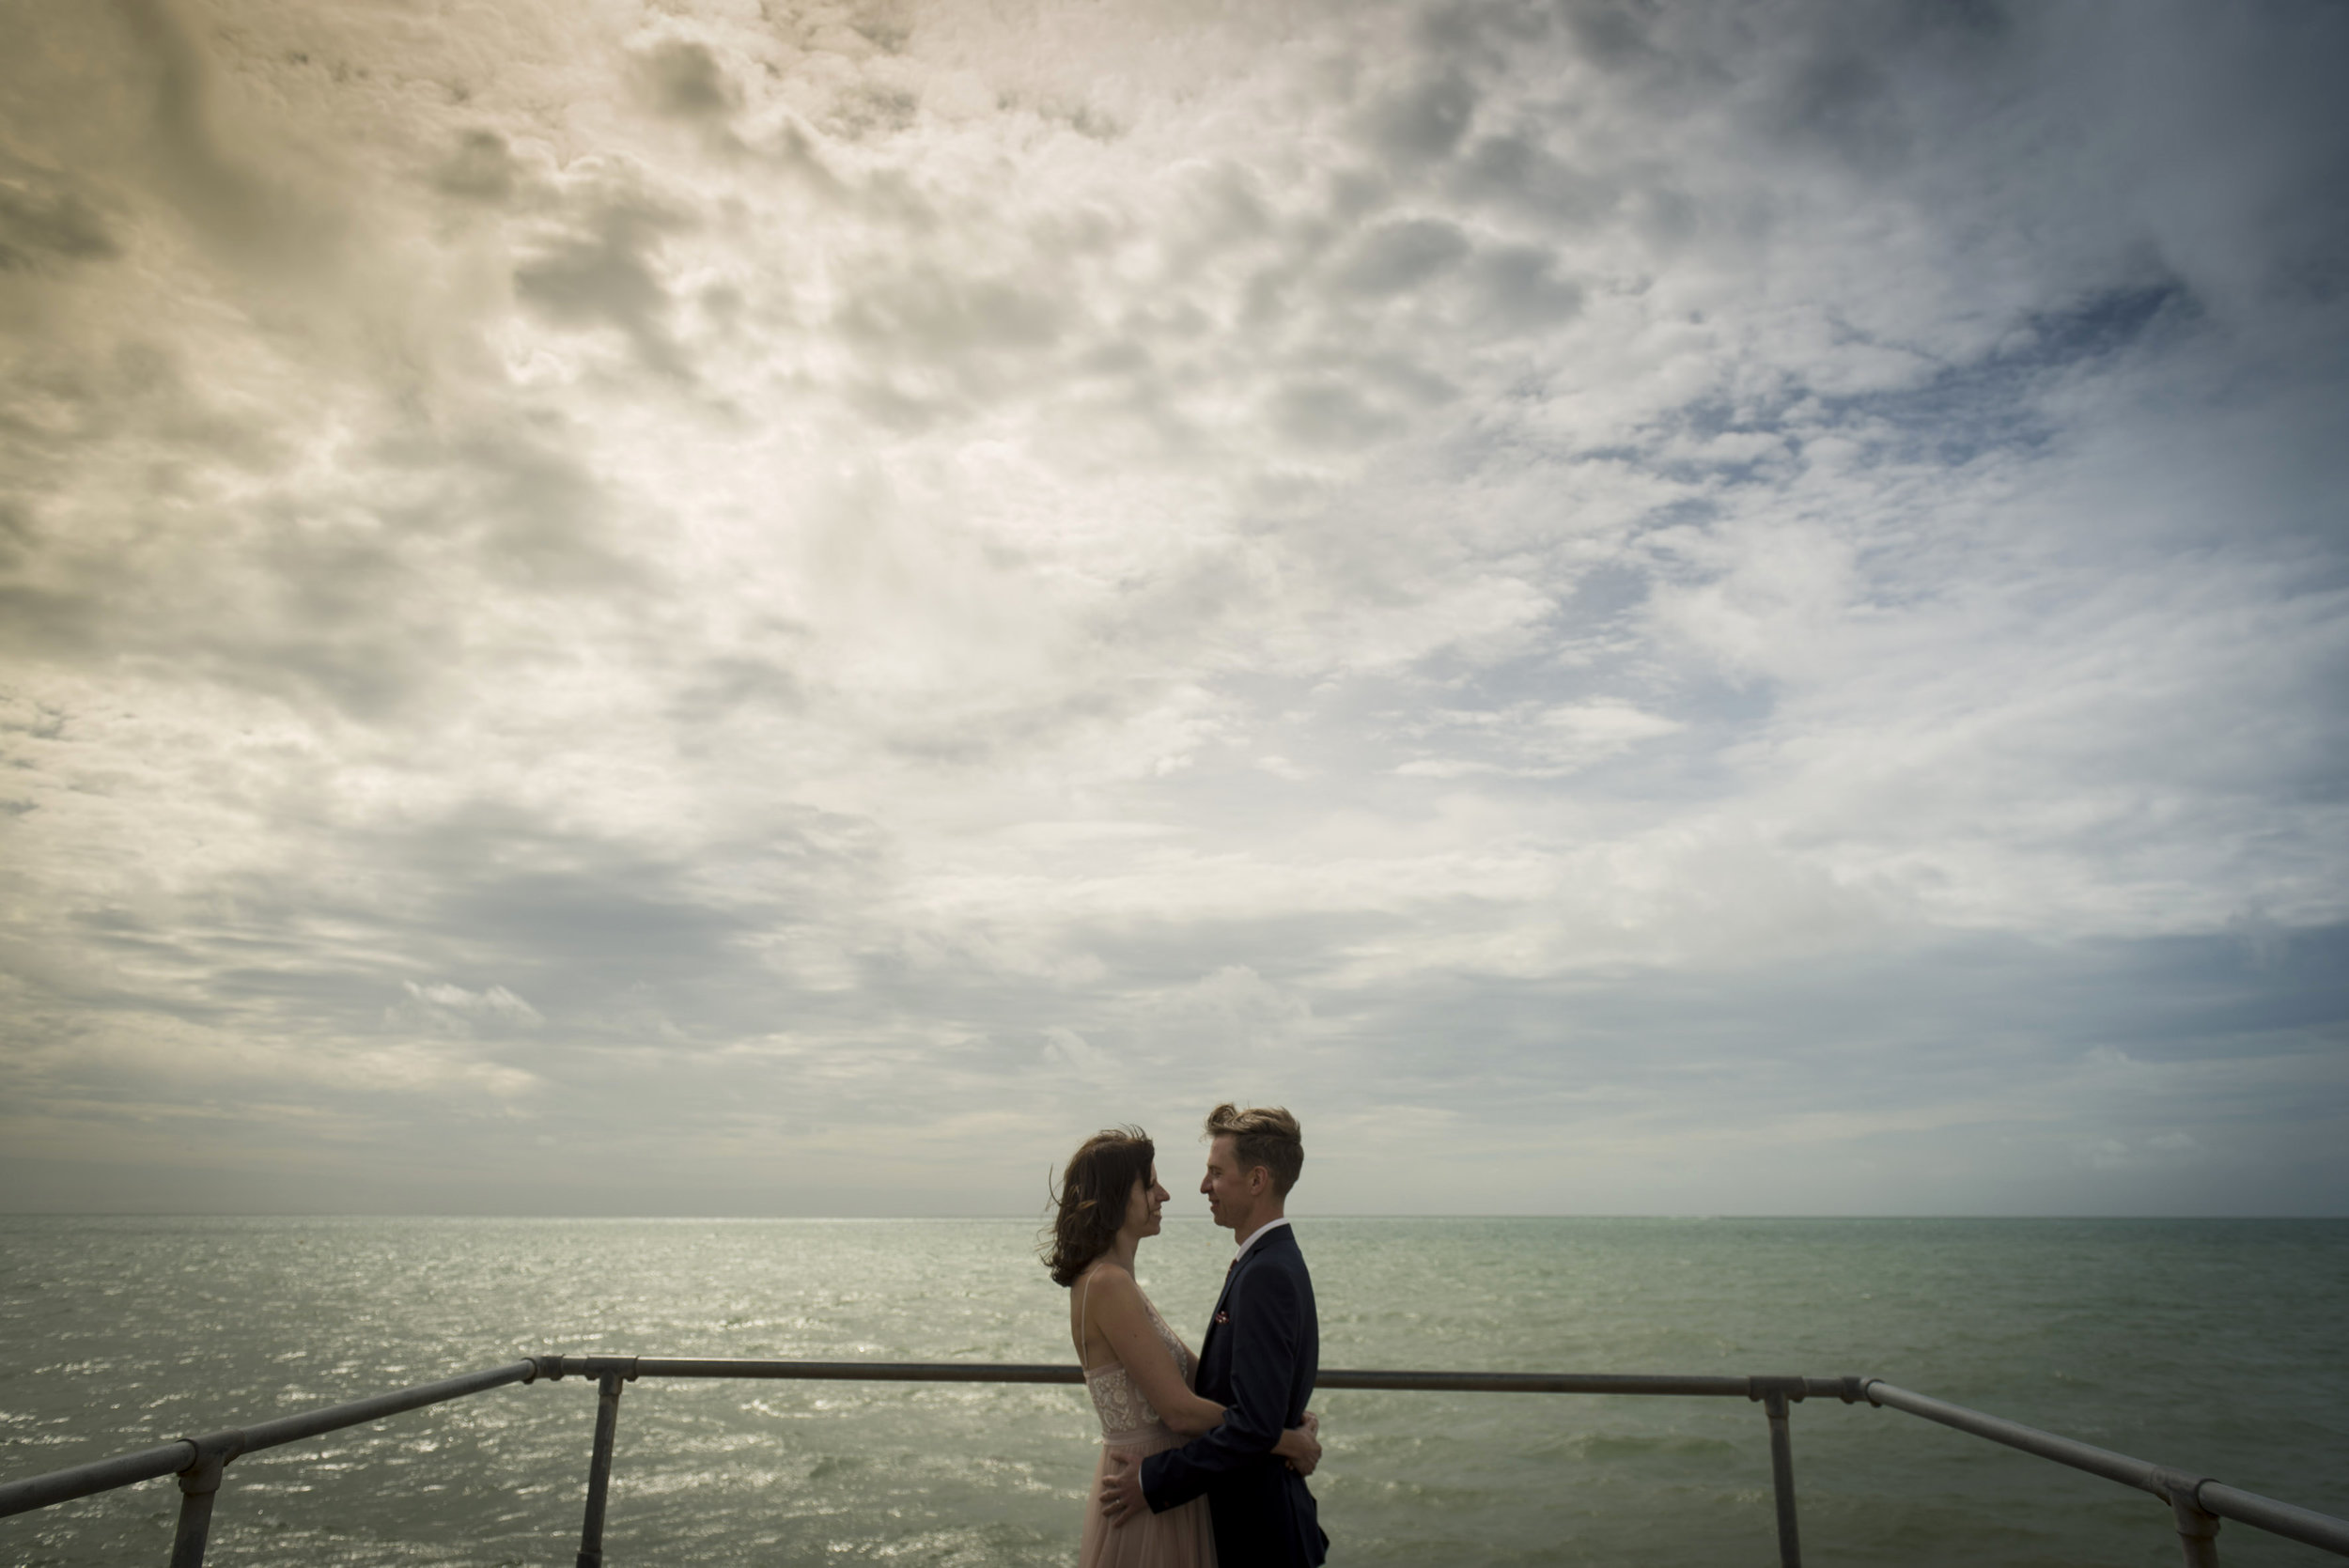 brighton-bandstand-wedding-4.jpg